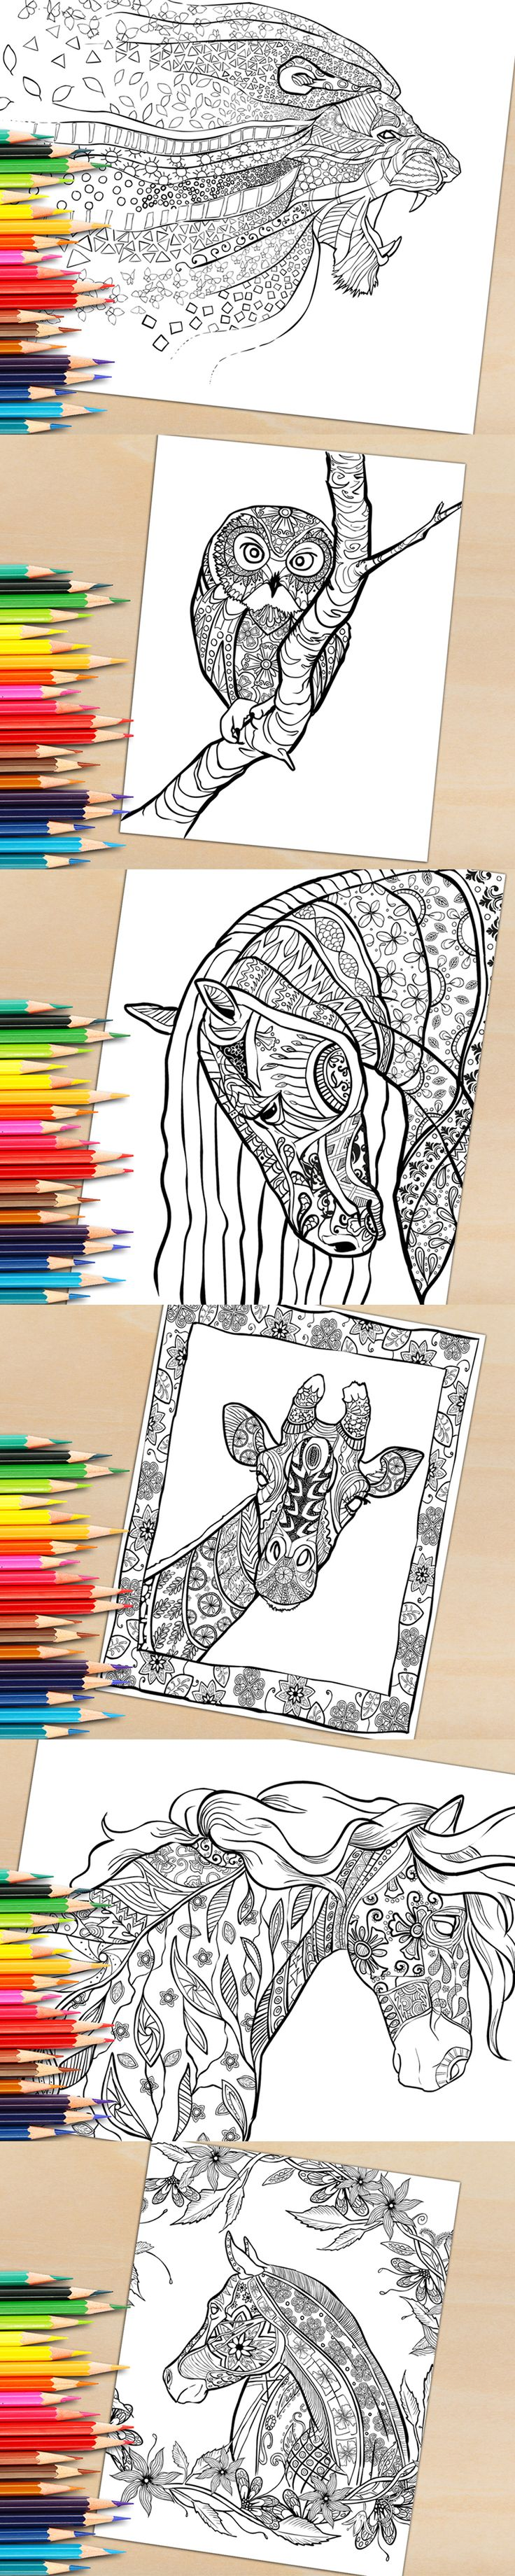 Li lion king coloring games online free - What Colors Would You Use To Color These Beautiful Animals How Many Color Schemes Can